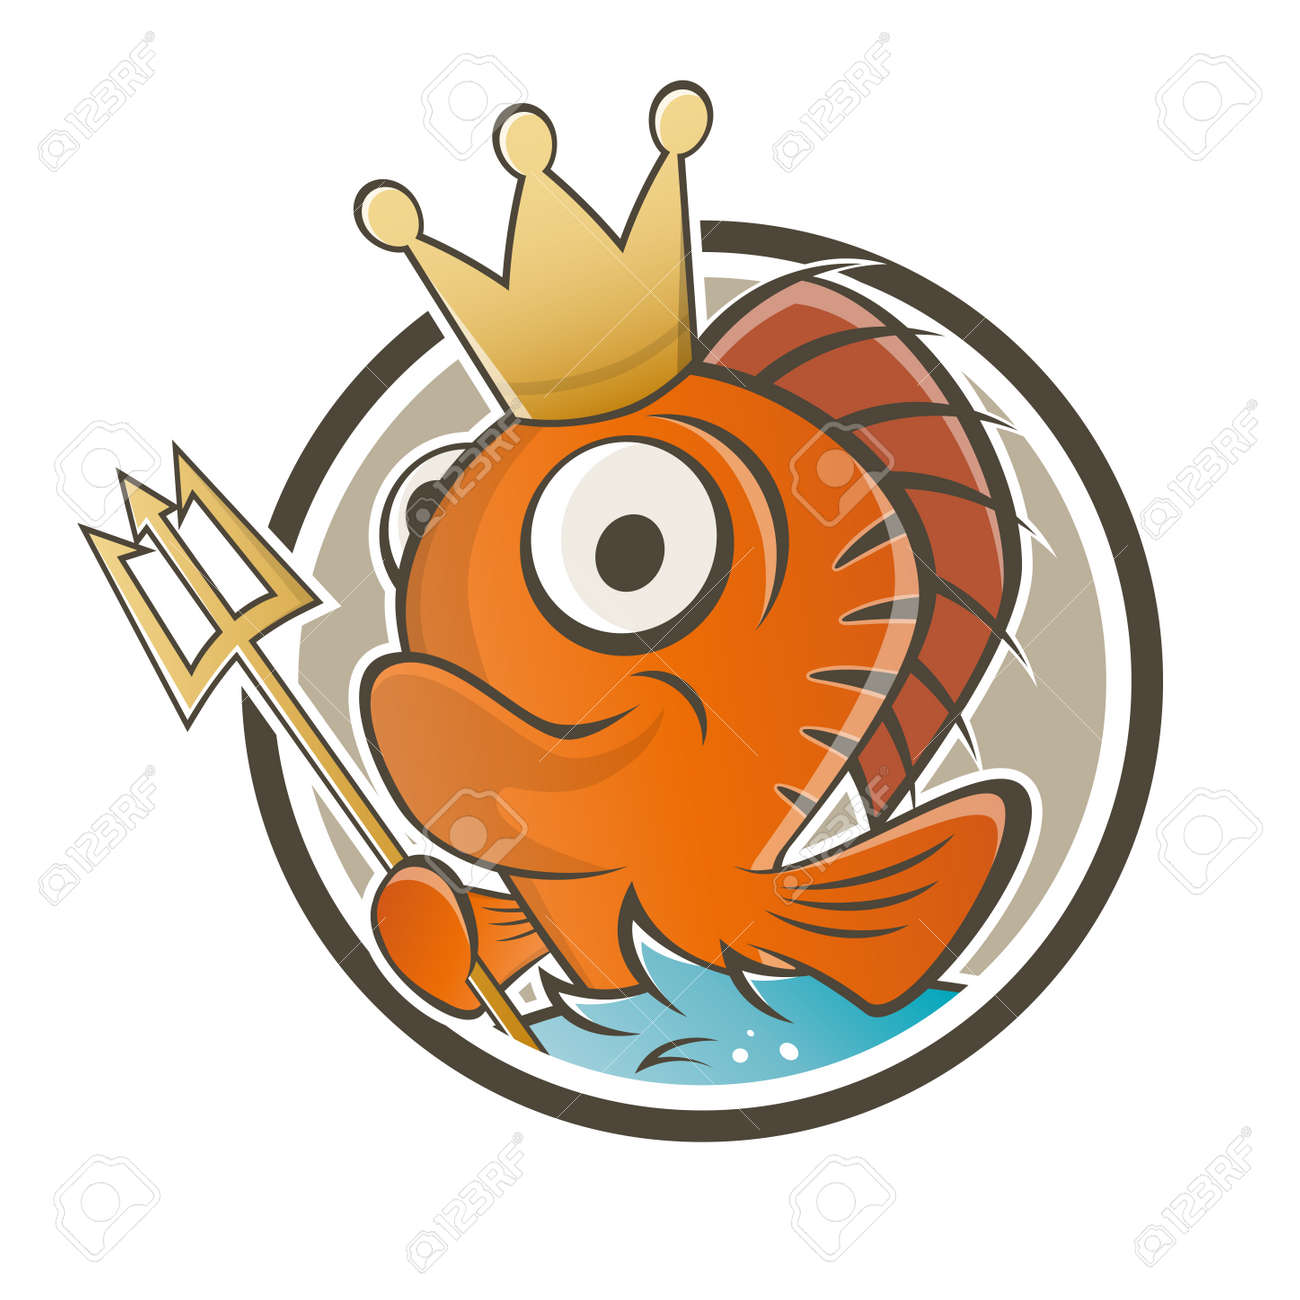 funny fish king cartoon royalty free cliparts vectors and stock rh 123rf com Puffer Fish Clip Art One Fish Two Fish Red Fish Blue Fish